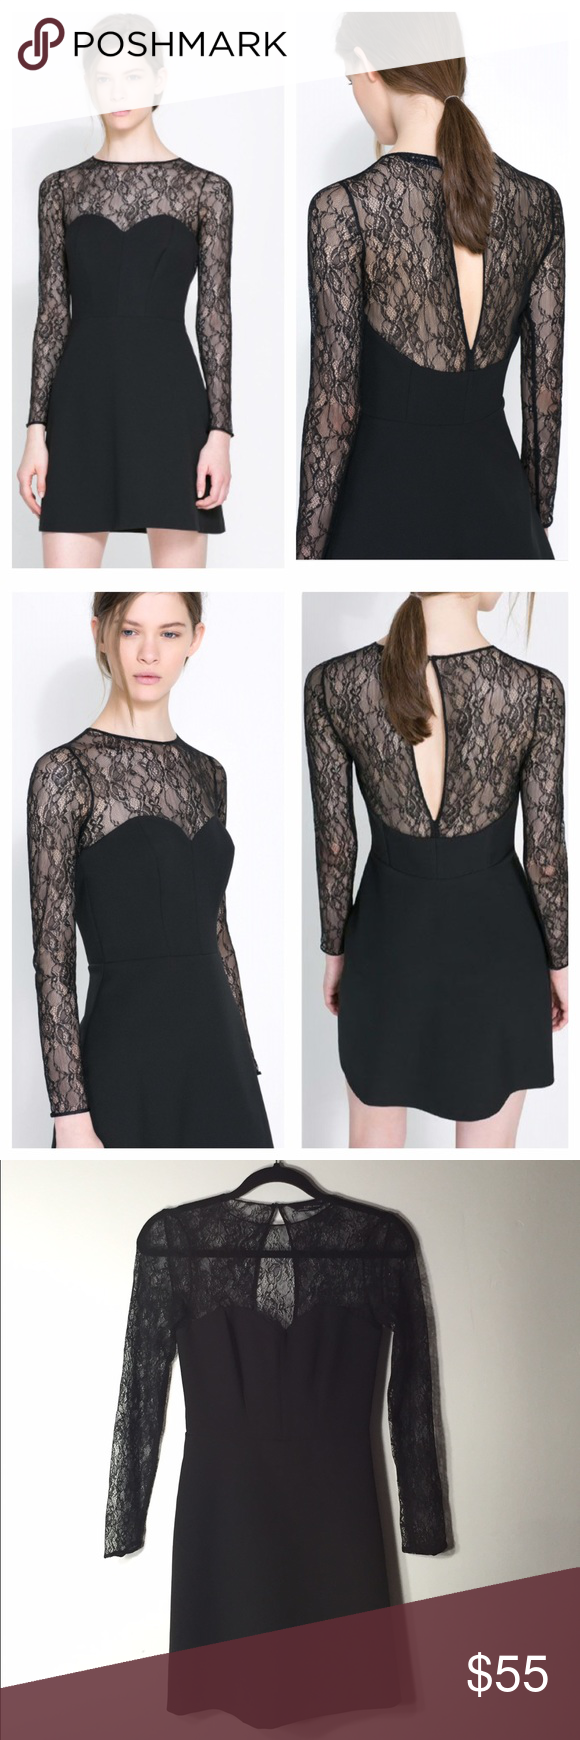 Zara combined lace dress zara dresses lbd and lace dress